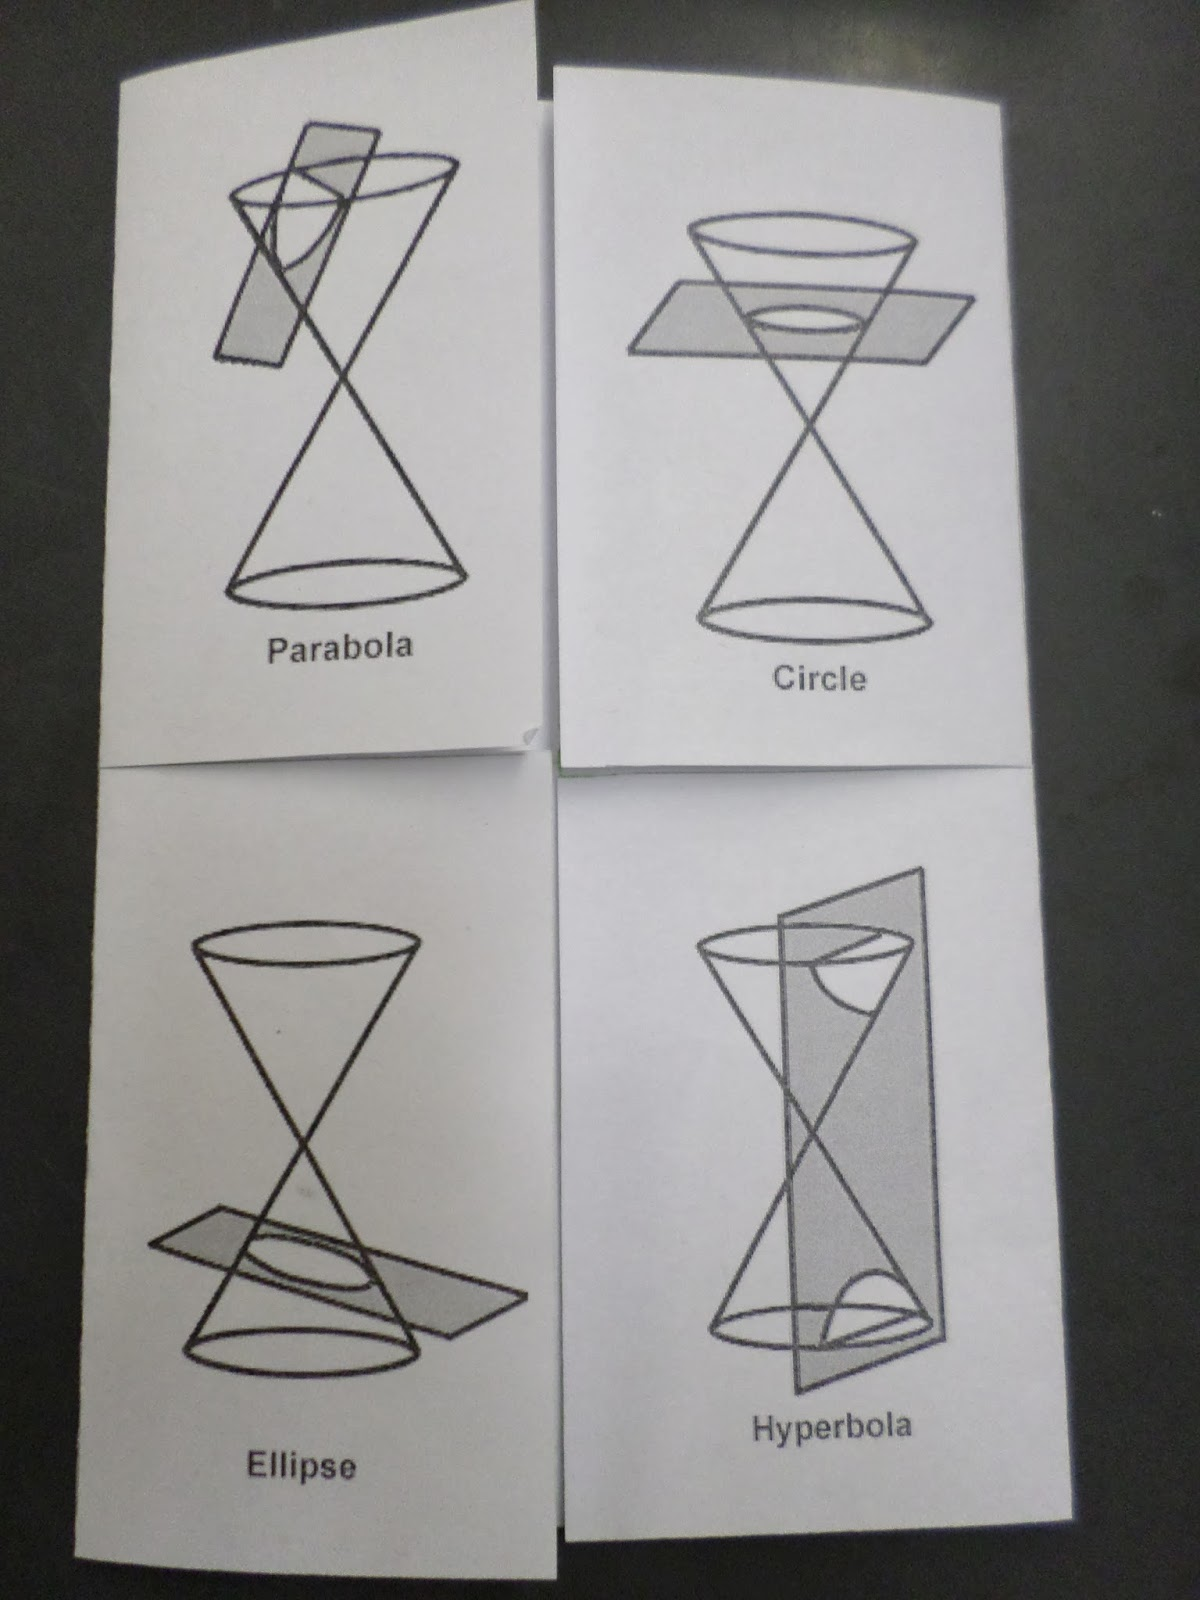 a paper on conic sections History of conic sections essaychapter 10 : quadratic essay on ellipse and conic sections ellipses there are four types of conic sections, circles.